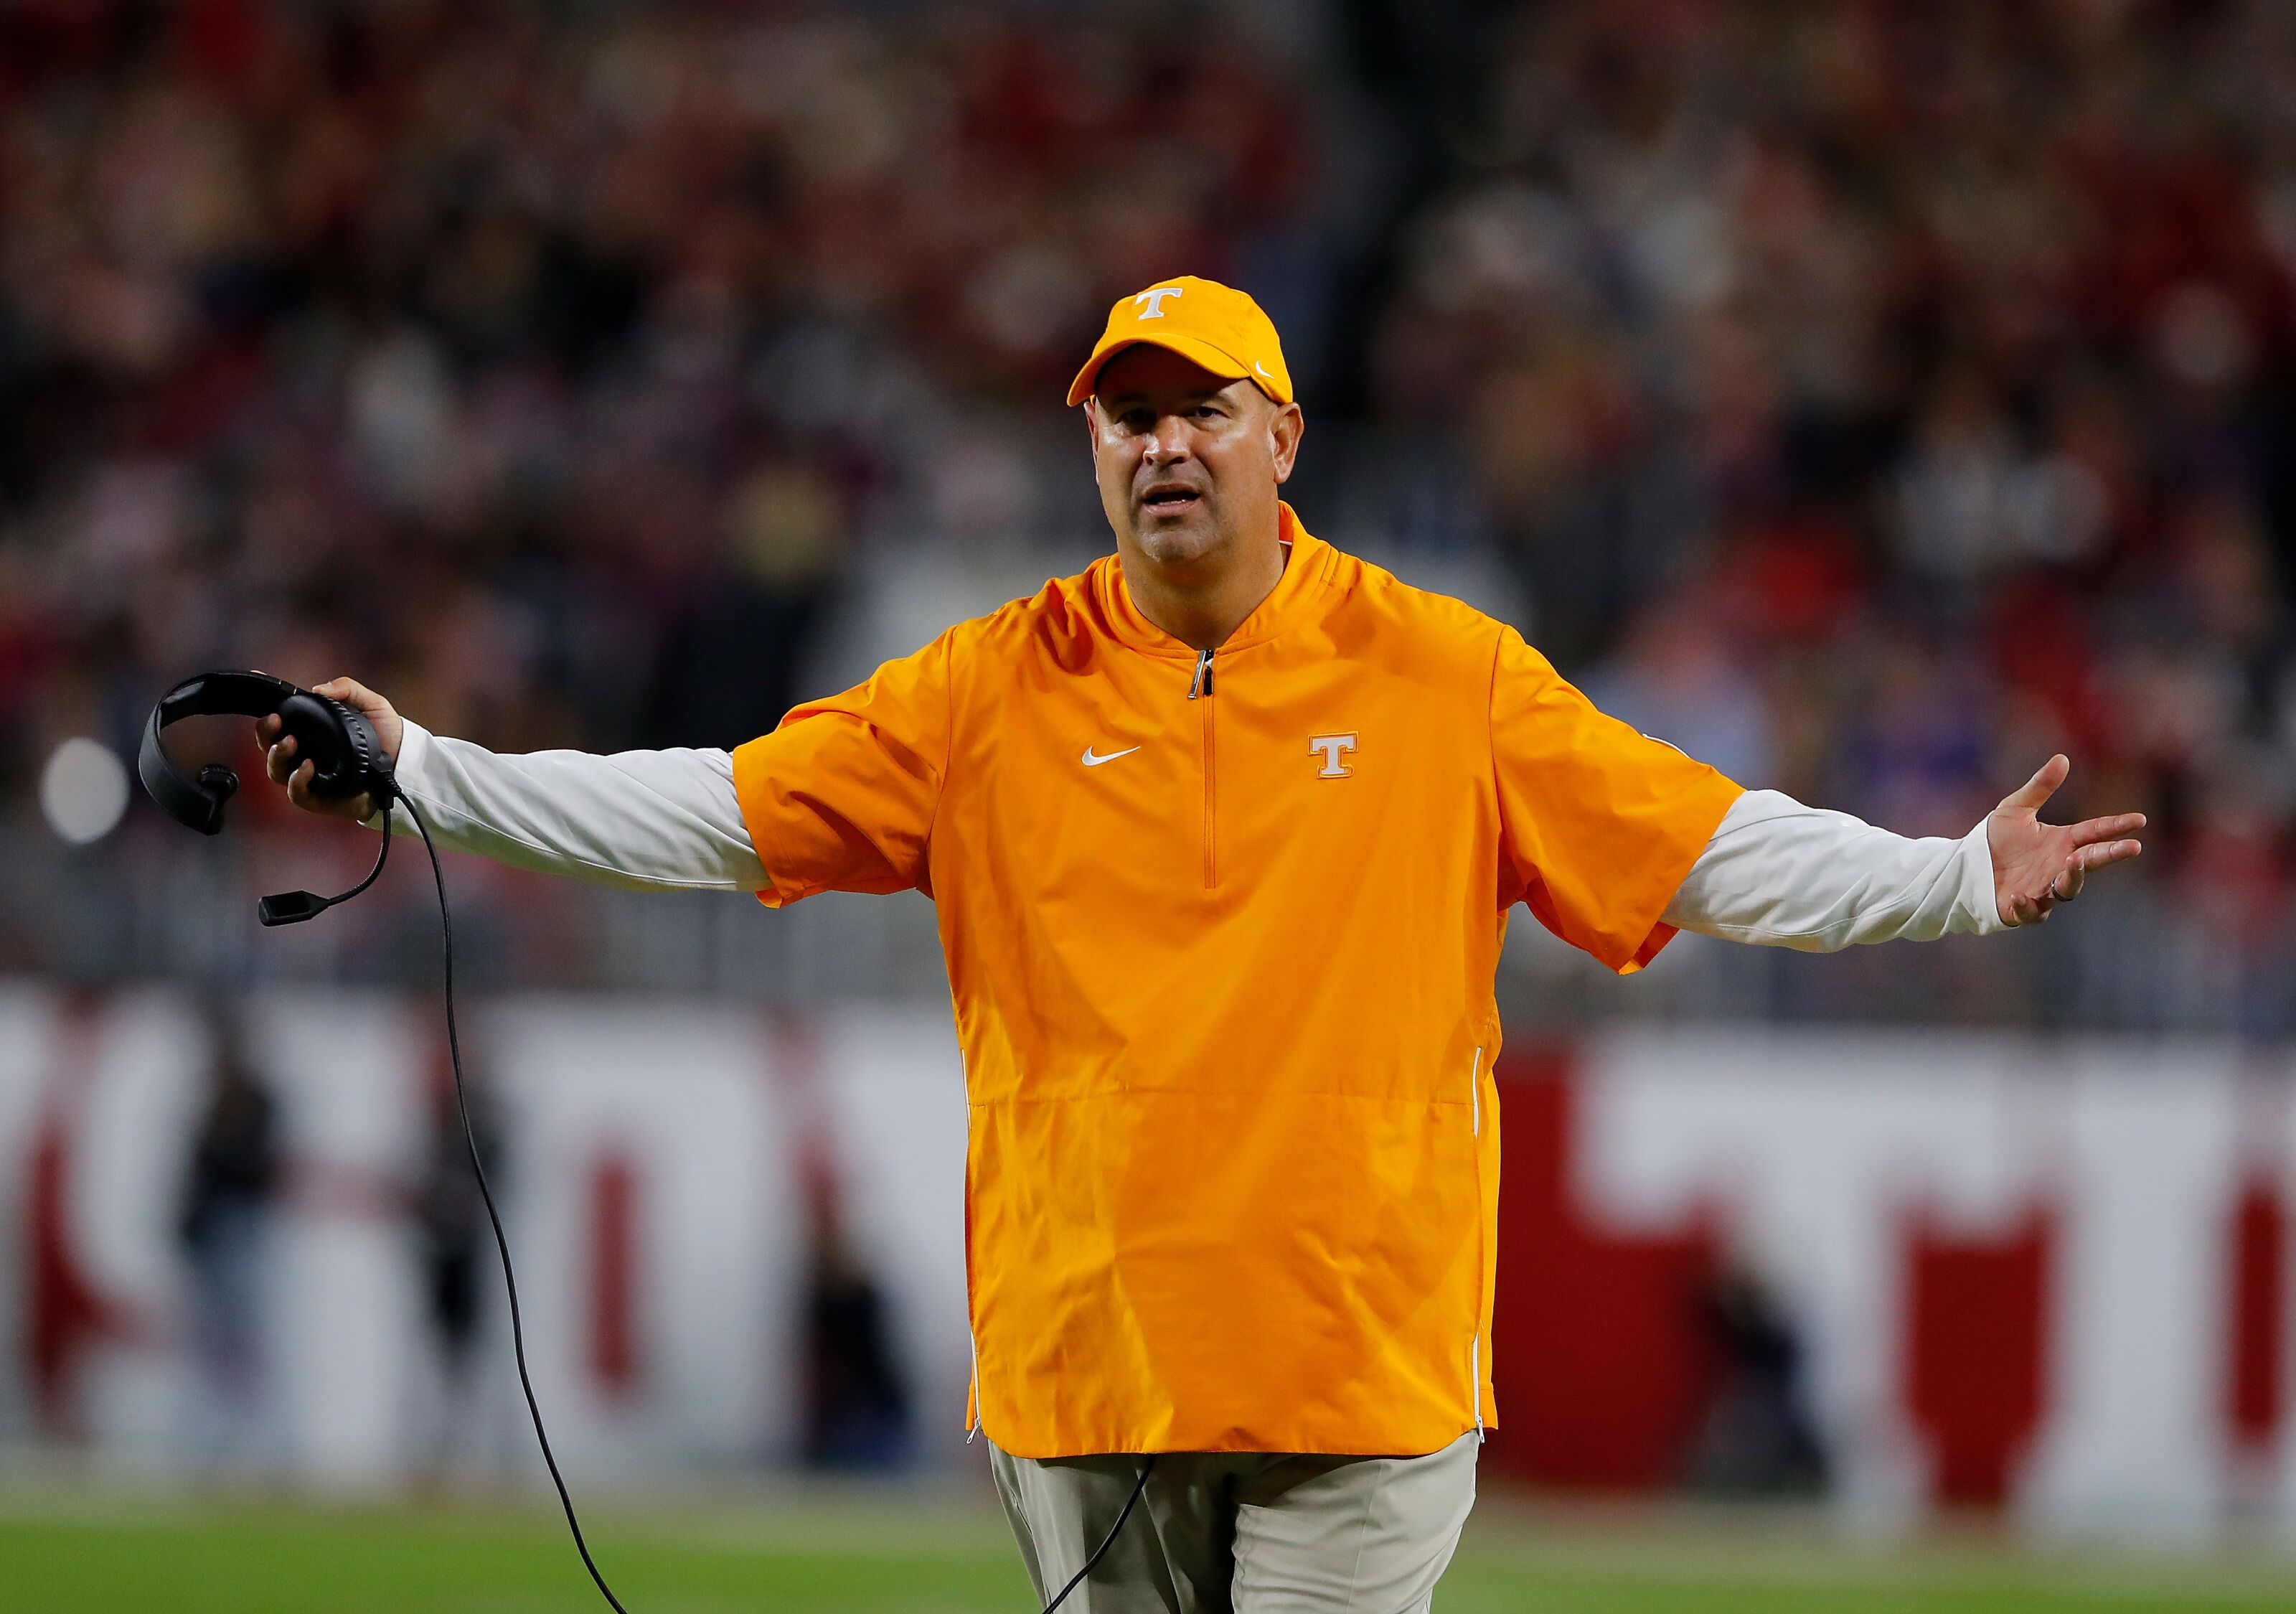 Tennessee football: Referees, no clarity on quarterback lead Vols Monday media session